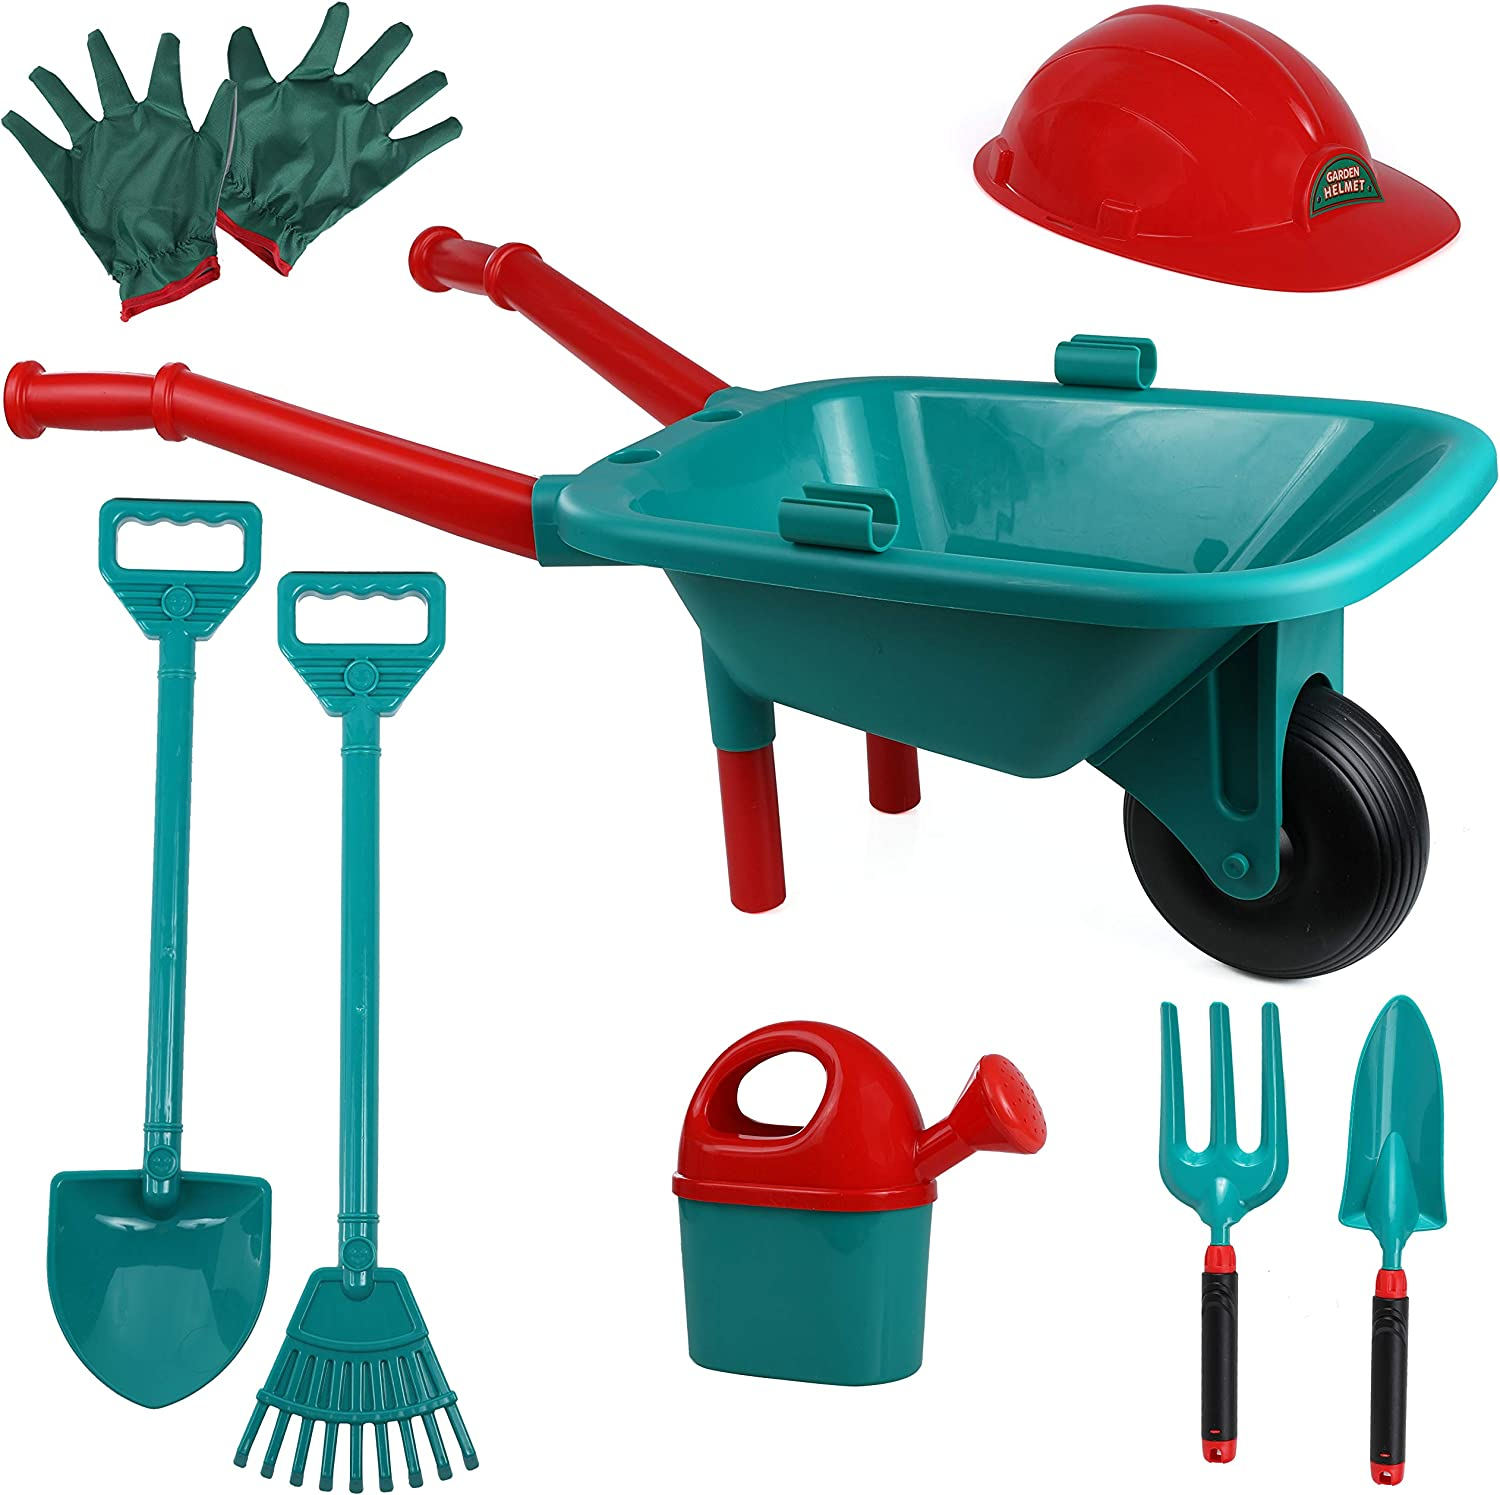 High Bounce Kids Plastic Wheelbarrow with Garden Accessories- Gardening Gloves, Watering Can, Shovel, Hoe, Rake, Fork and Hat